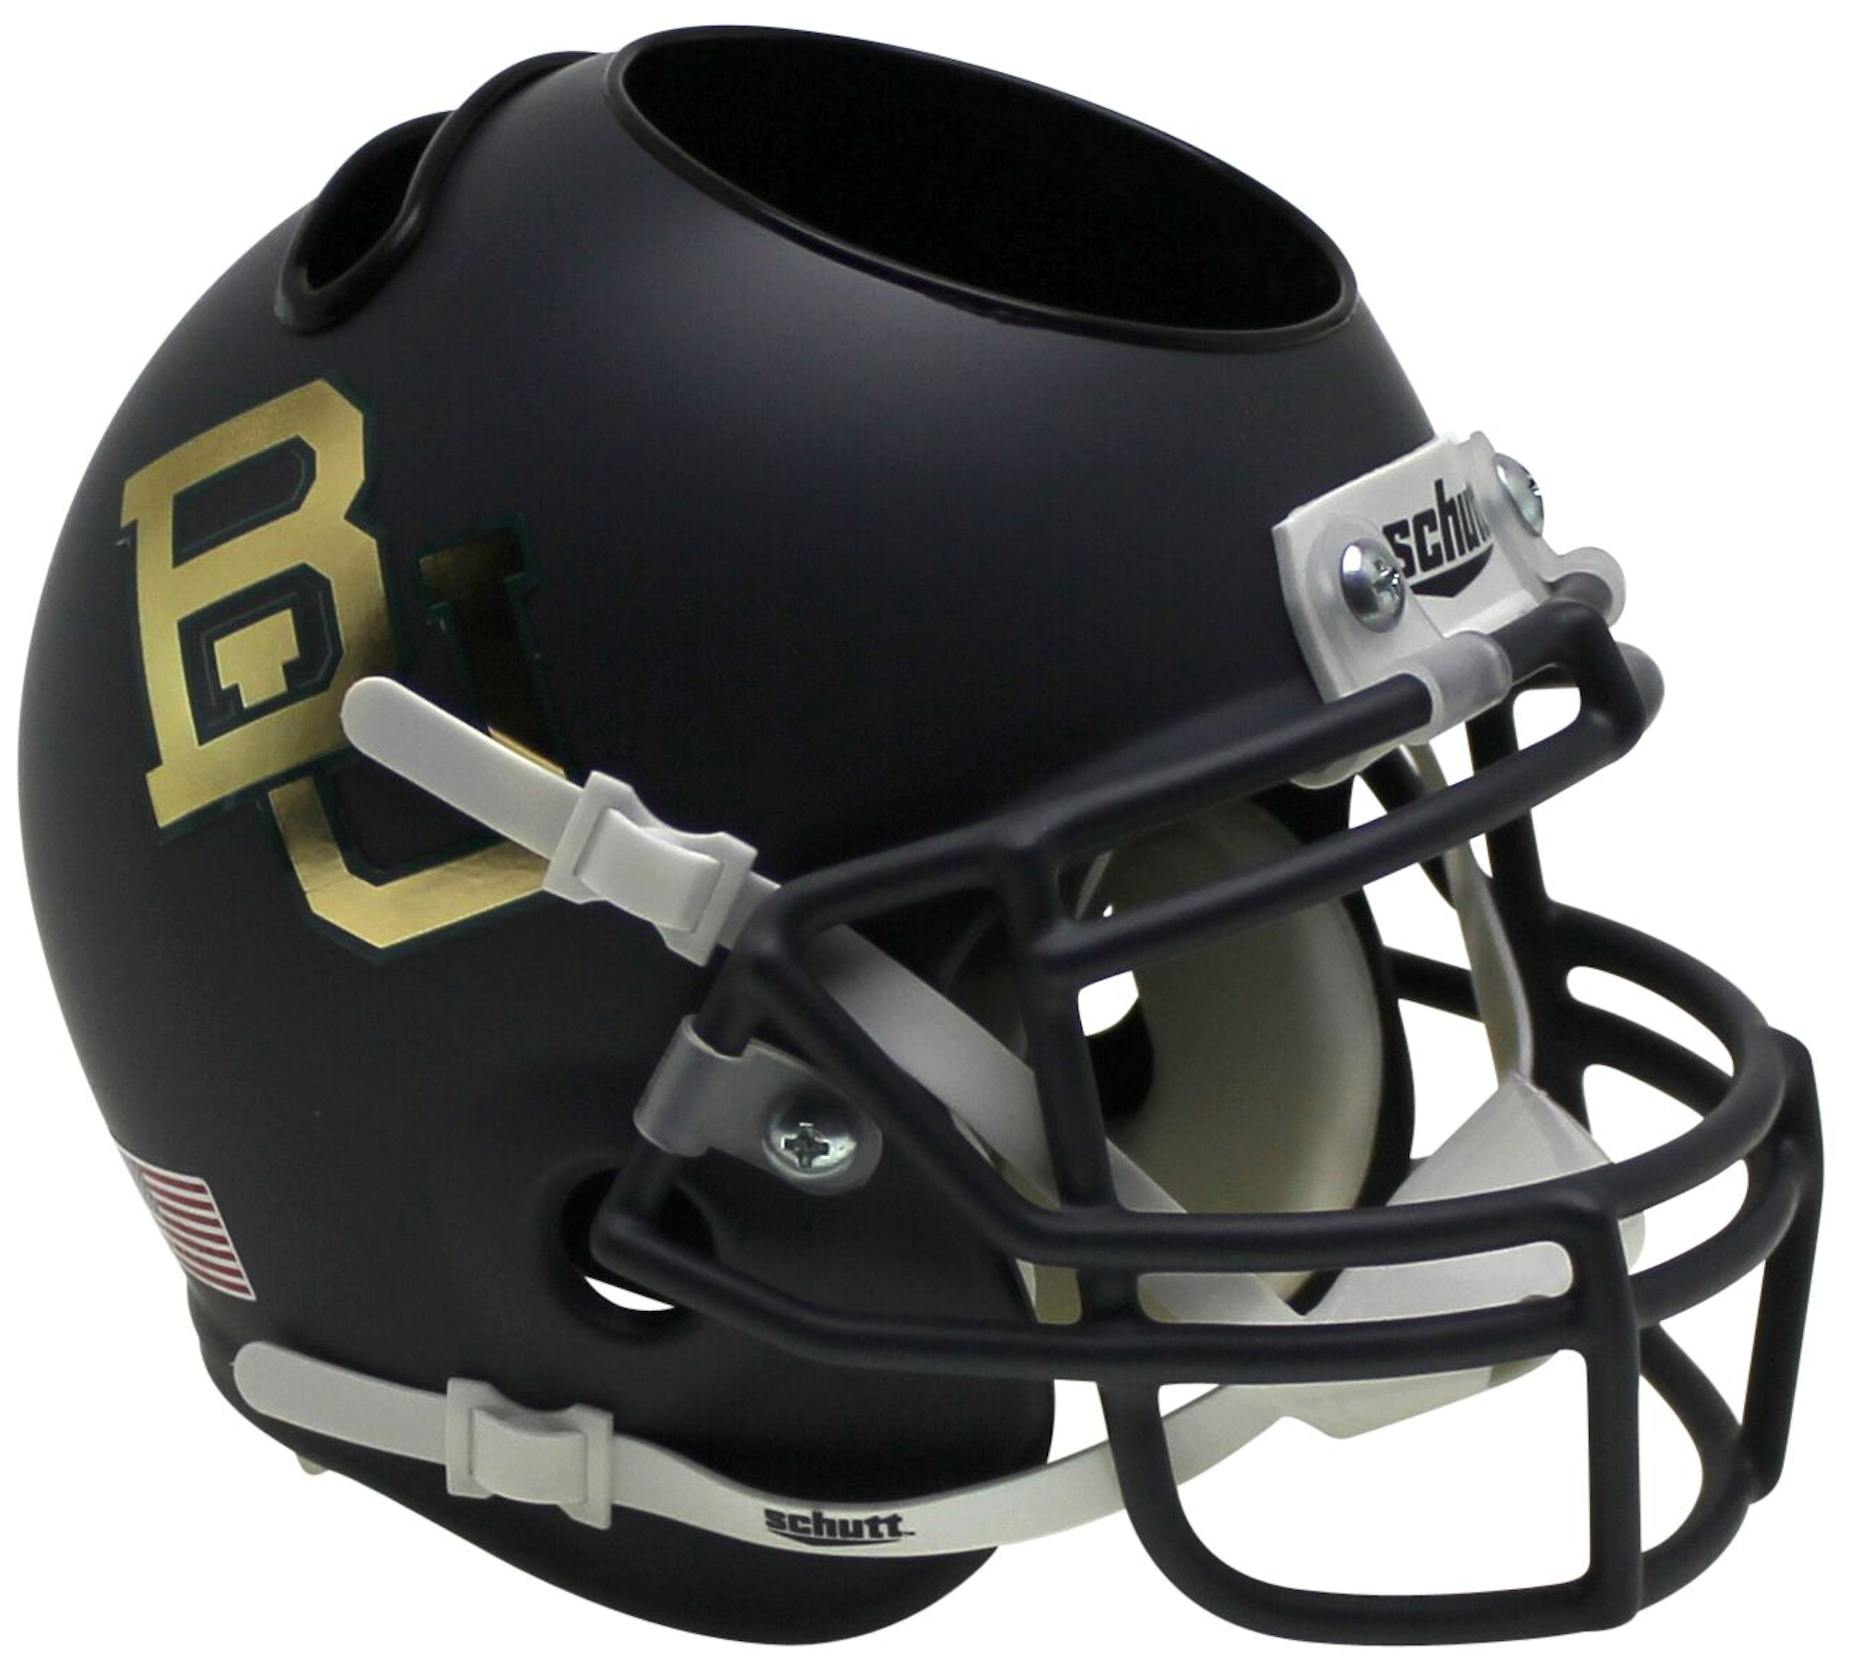 Baylor Bears Miniature Football Helmet Desk Caddy <B>Matte Anthracite Chrome Decal</B>